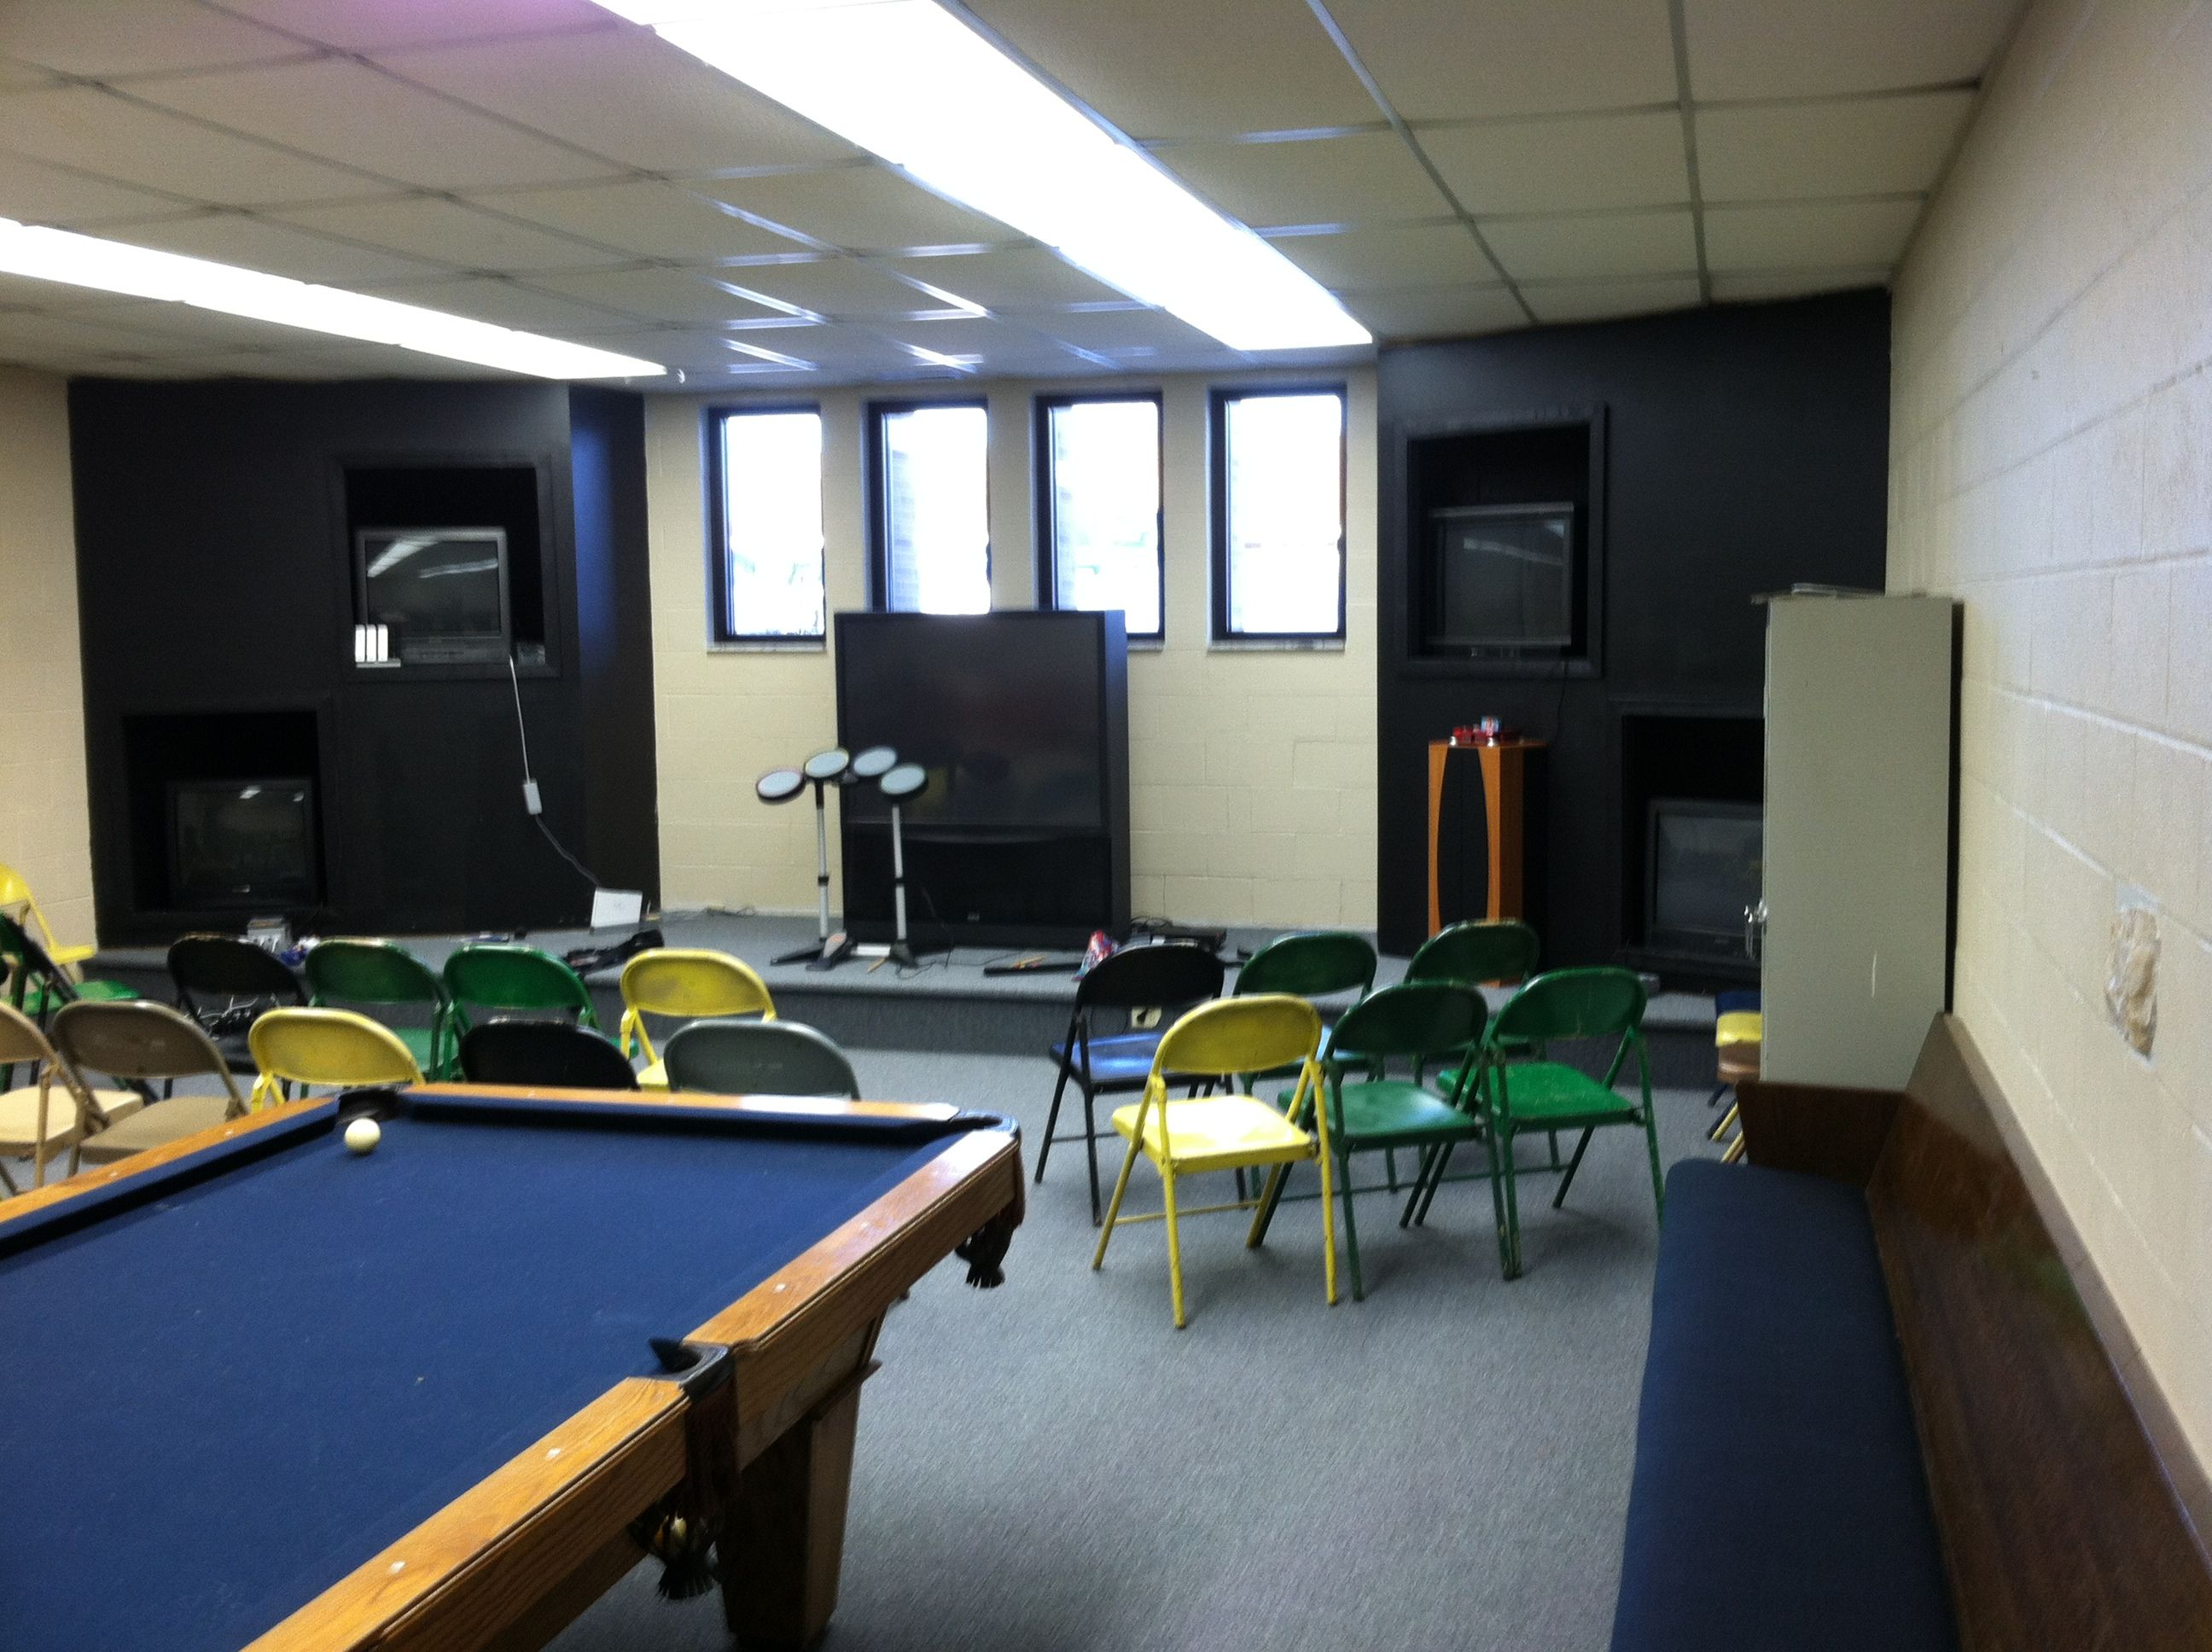 Pin By Tony Green On Church Youth Ministry Room Youth Rooms Youth Group Rooms